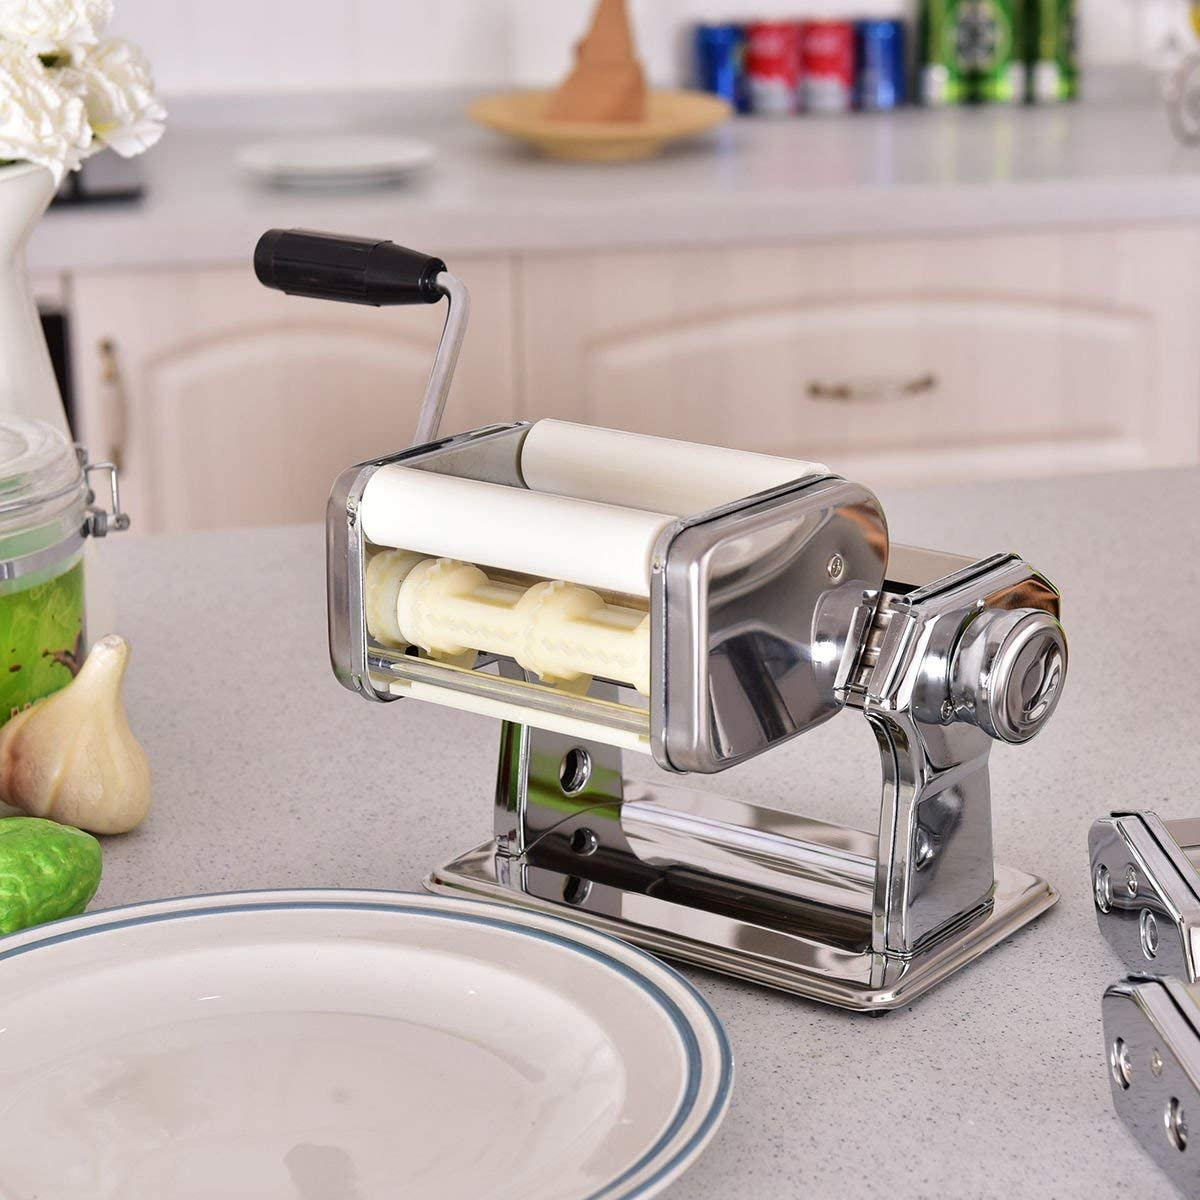 Spaghetti Maker Hand Crank with Molded Plastic Handle HAPPYGRILL Pasta Maker Machine 5 in 1 Stainless Steel Construction 7 Adjustable Thickness Settings Clamp 150 Roller Pasta Cutter